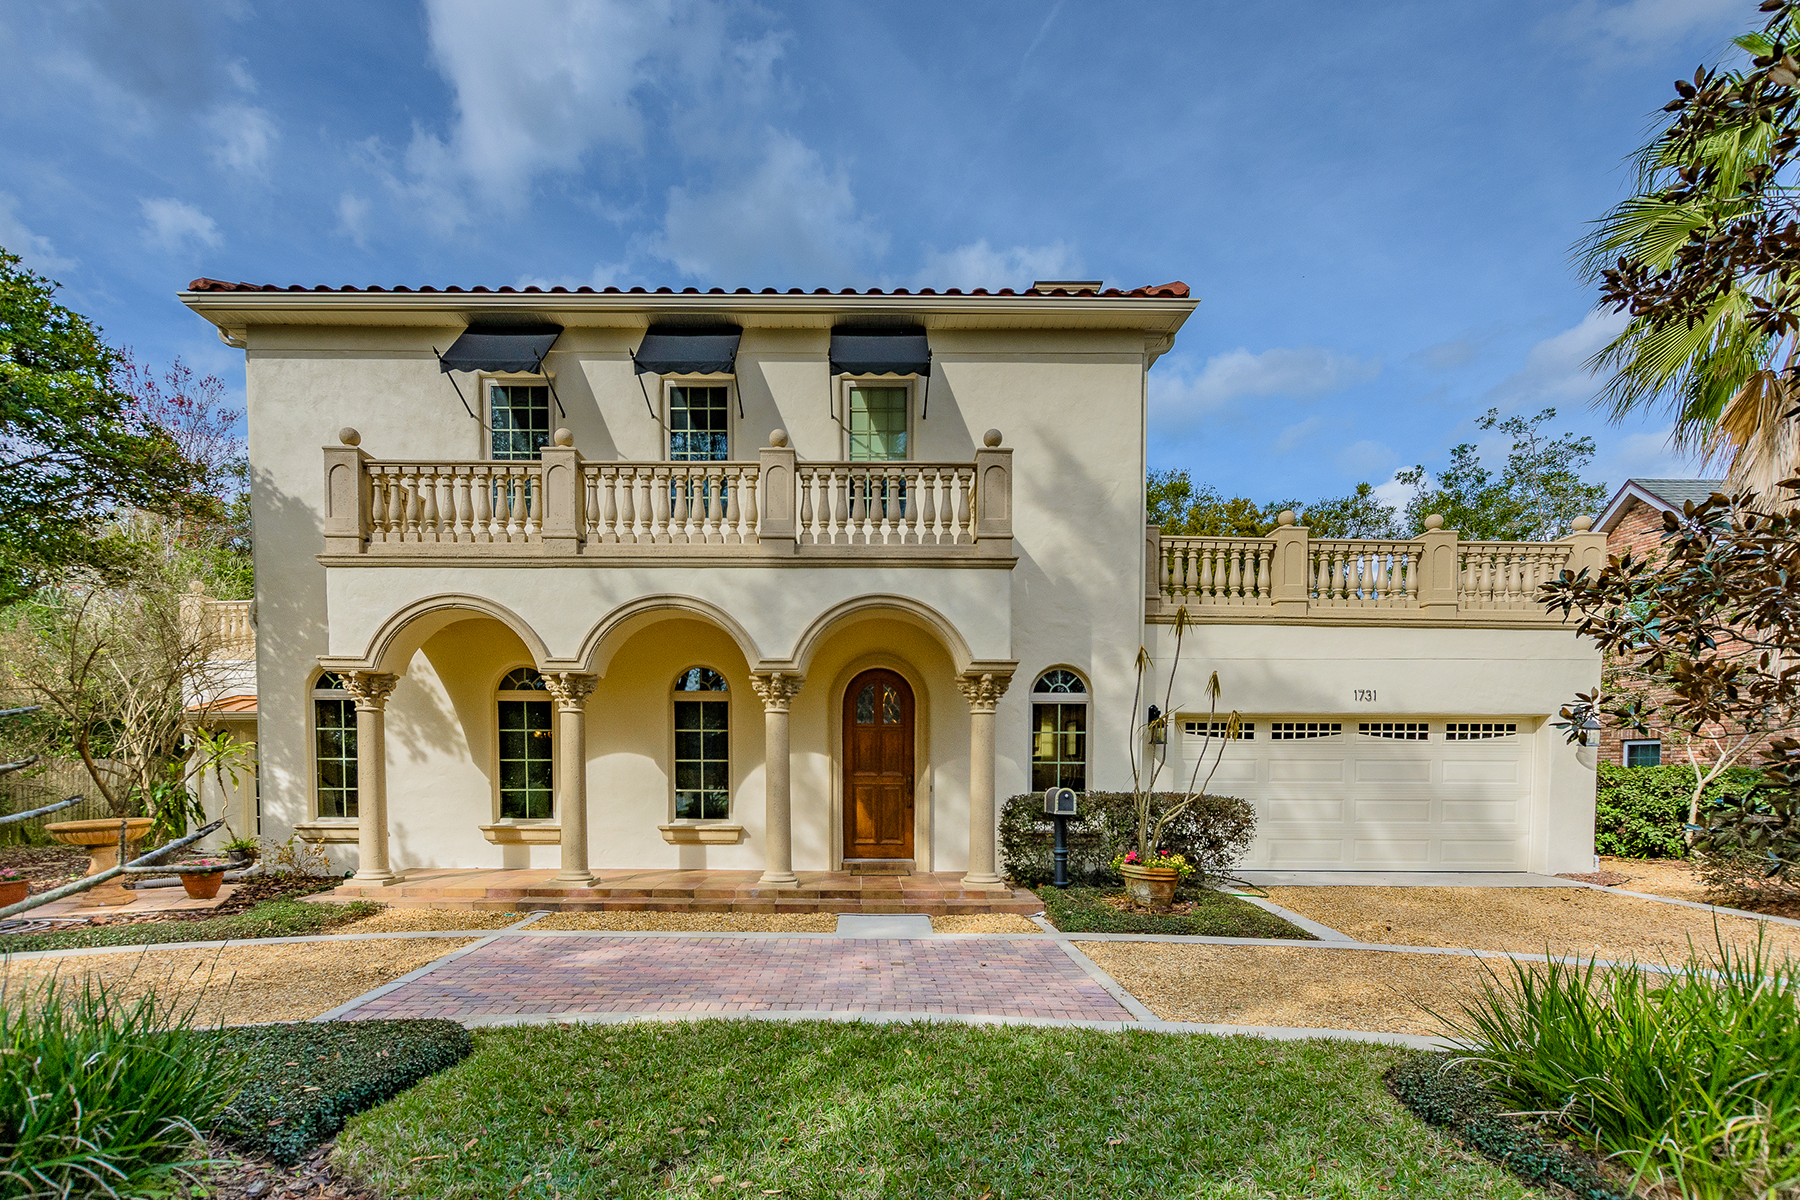 Single Family Home for Sale at Winter Park 1731 Windsor Dr, Winter Park, Florida, 32789 United States